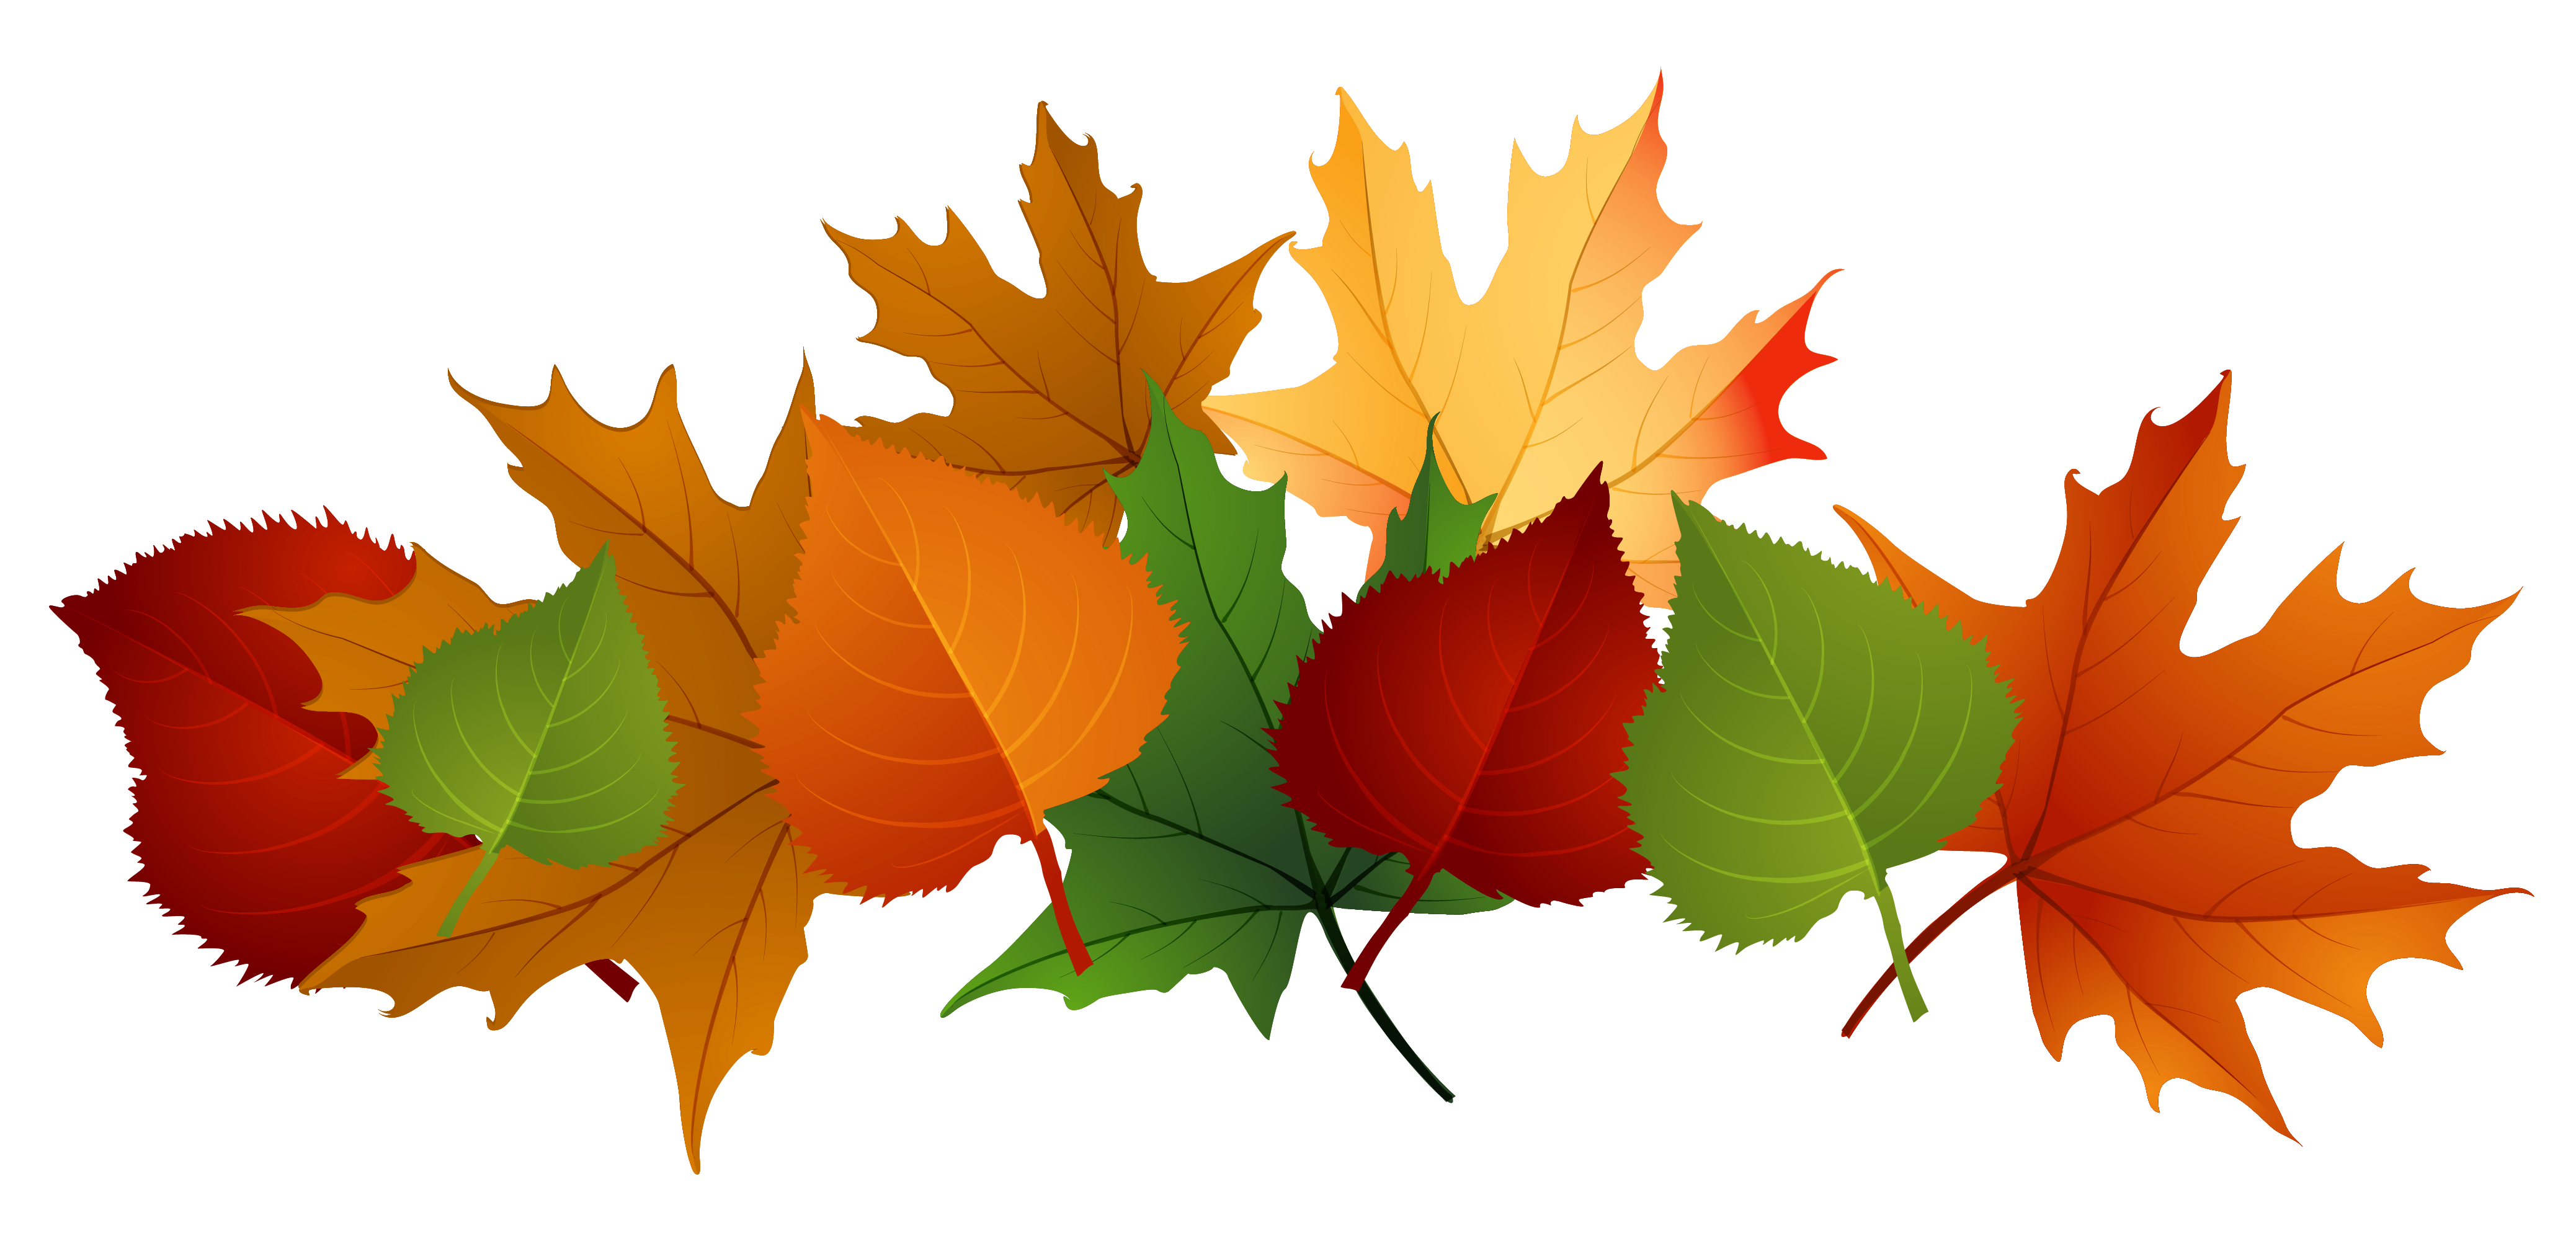 Fall Leaves Fall Leaf Png No Background Free Images